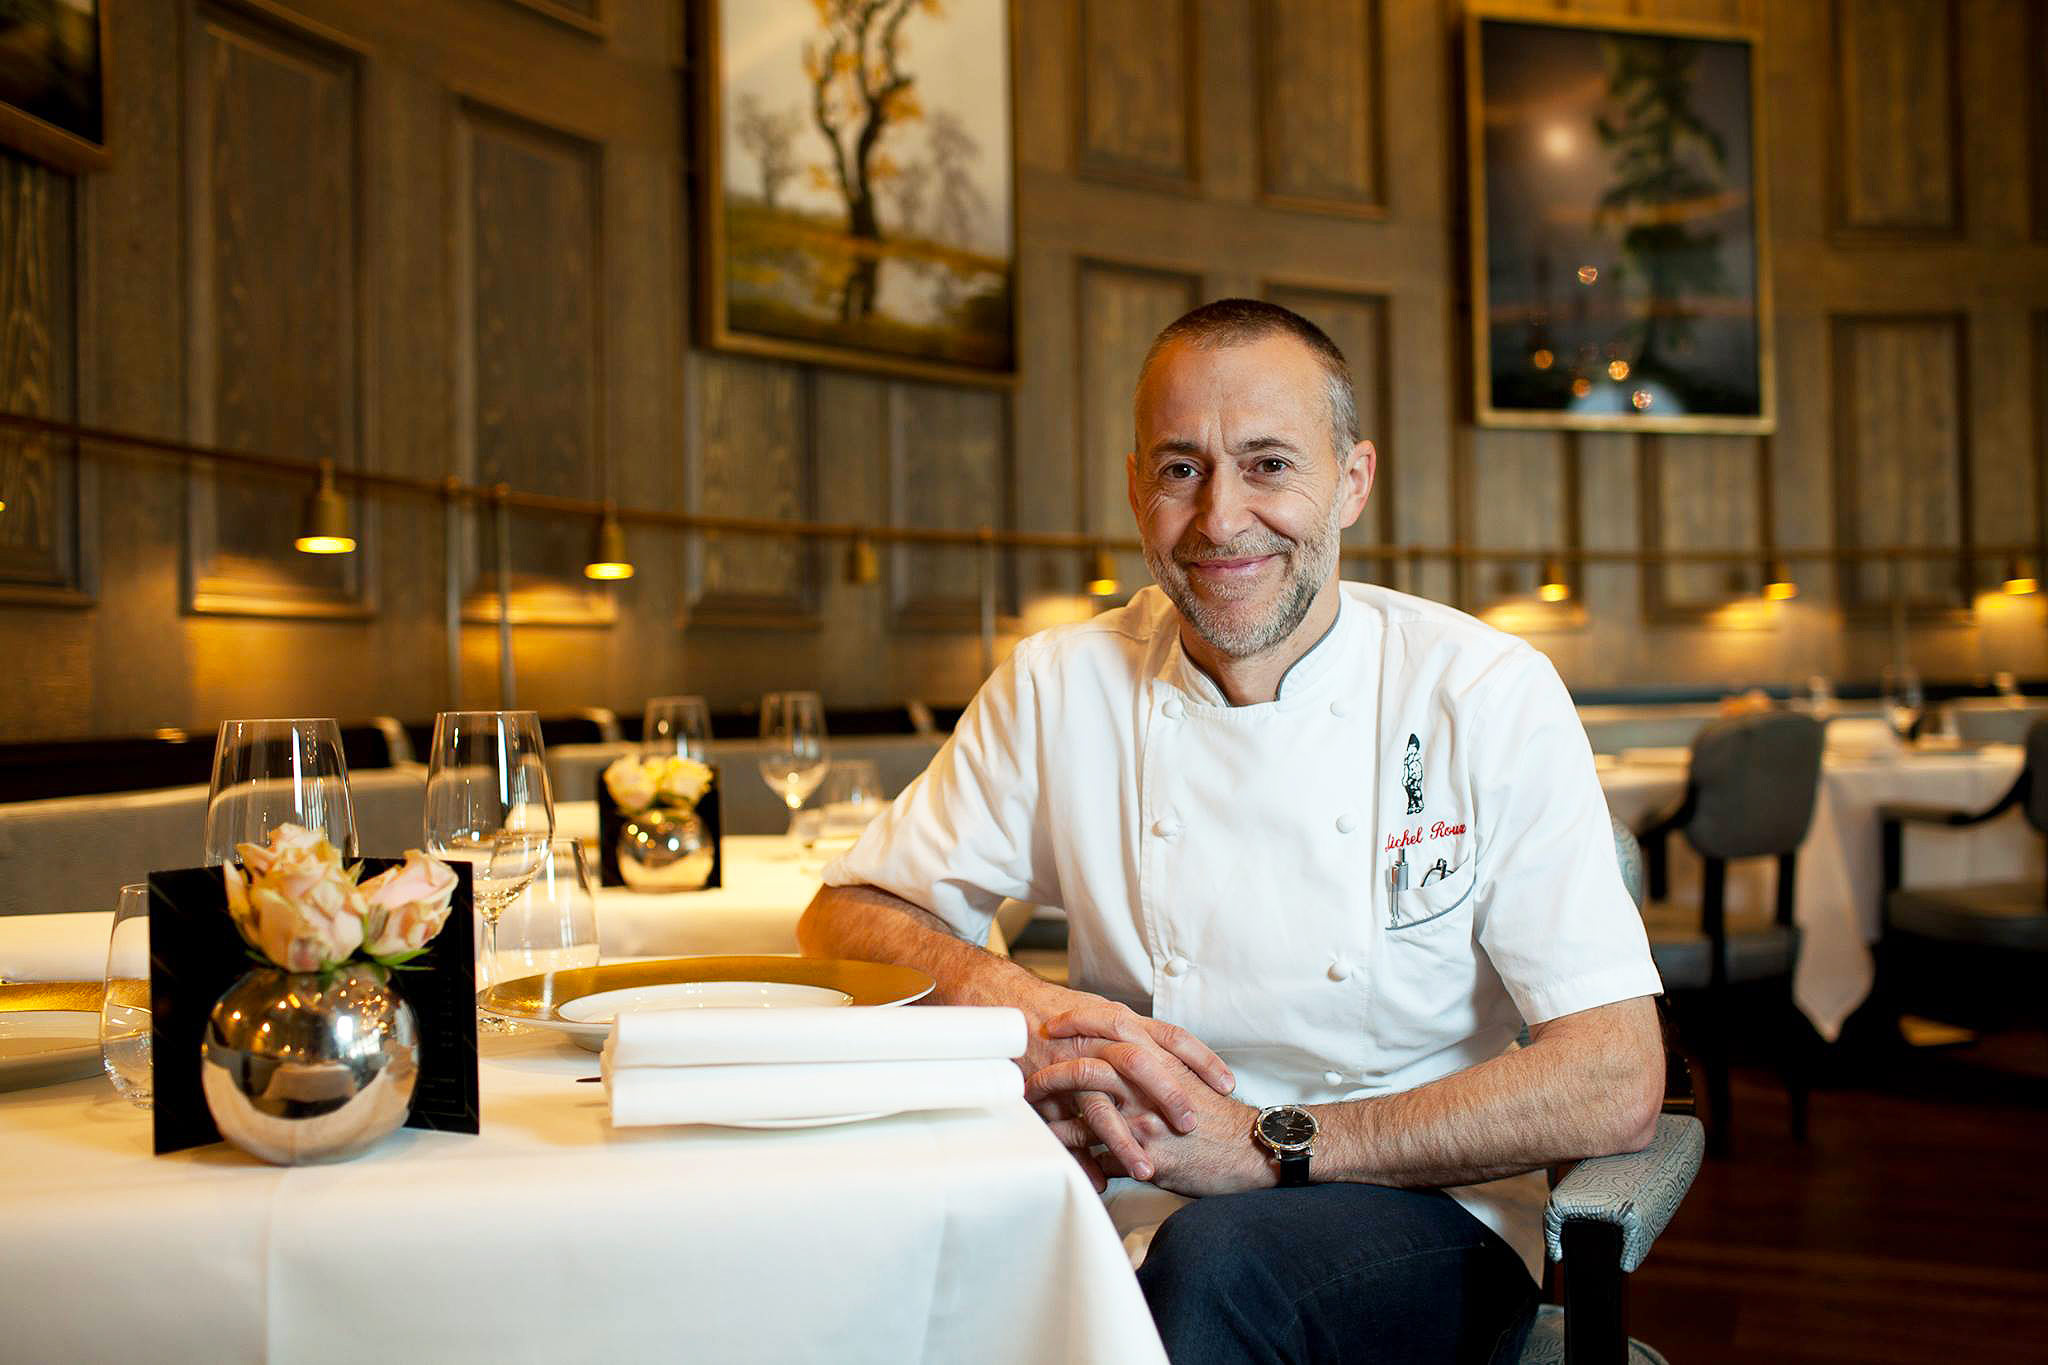 Top-Notch Cuisine And Impeccable Service At The Roux at the Landau